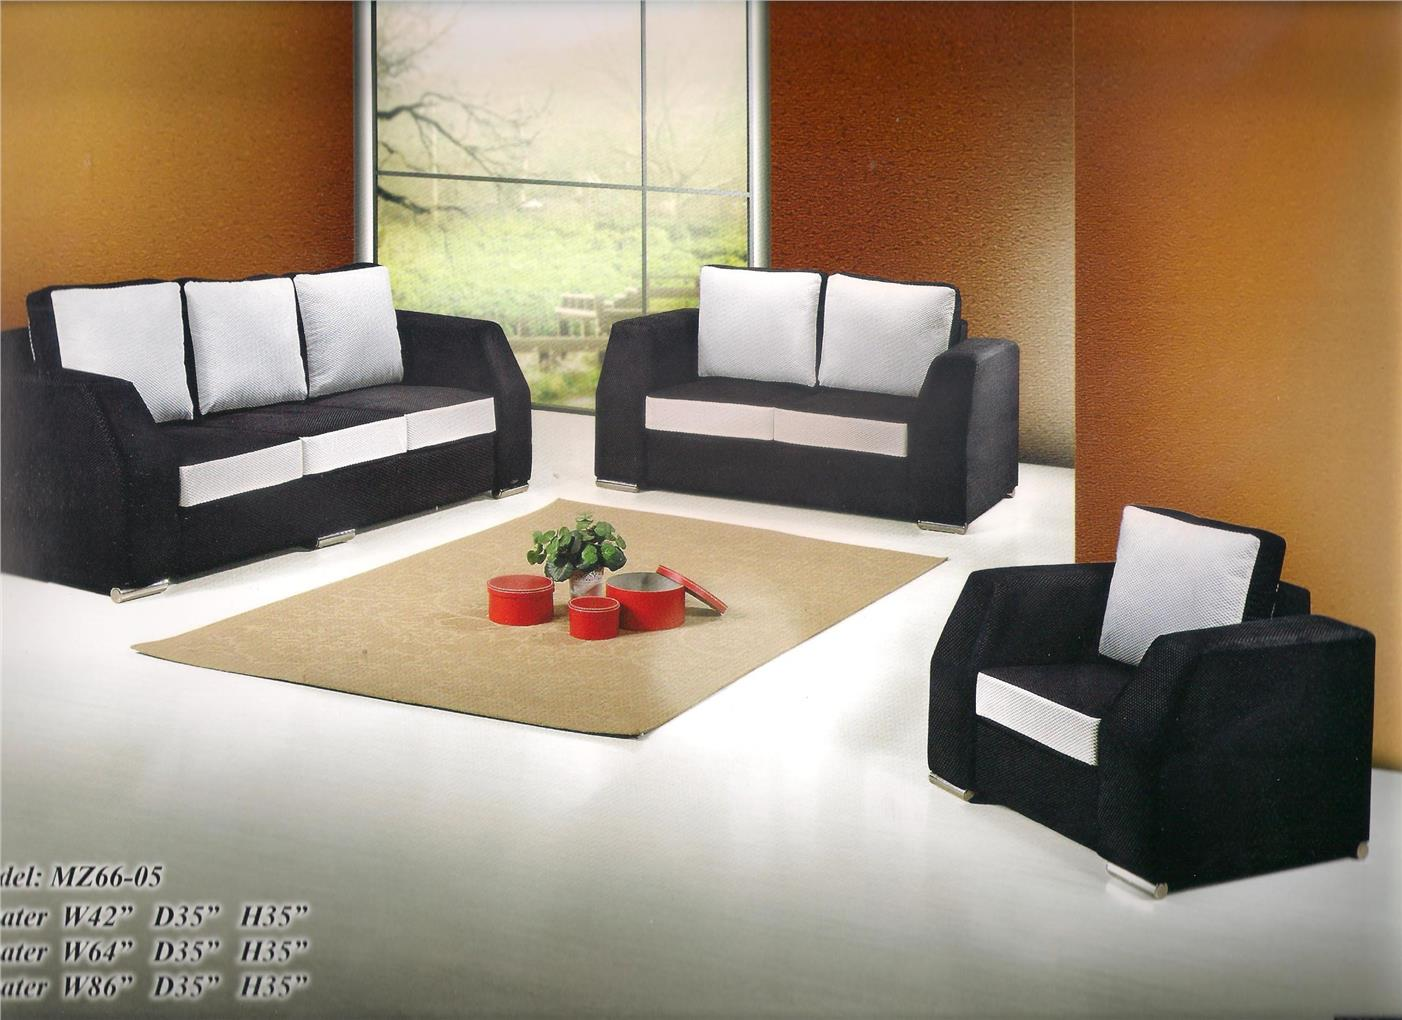 nicehome low price 3 2 1 seater sof end 10 18 2017 1 15 pm. Black Bedroom Furniture Sets. Home Design Ideas